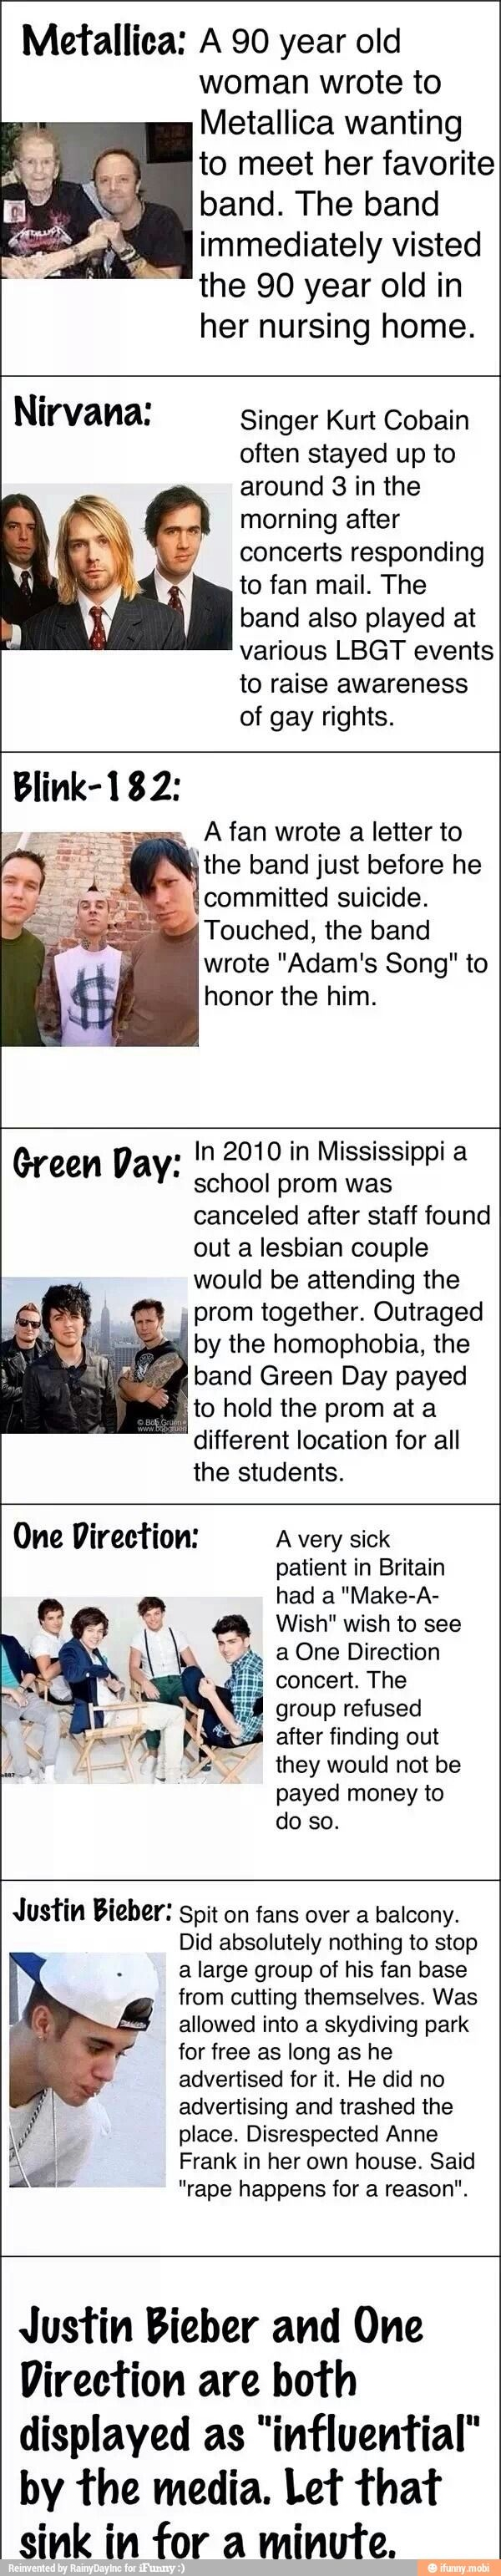 Metallica, Nirvana, Blink 182,  Green day  for the WIN. One Direction and Justin bieber are an epic fail. I dont understand people who like them.... Do you not know what good music is????